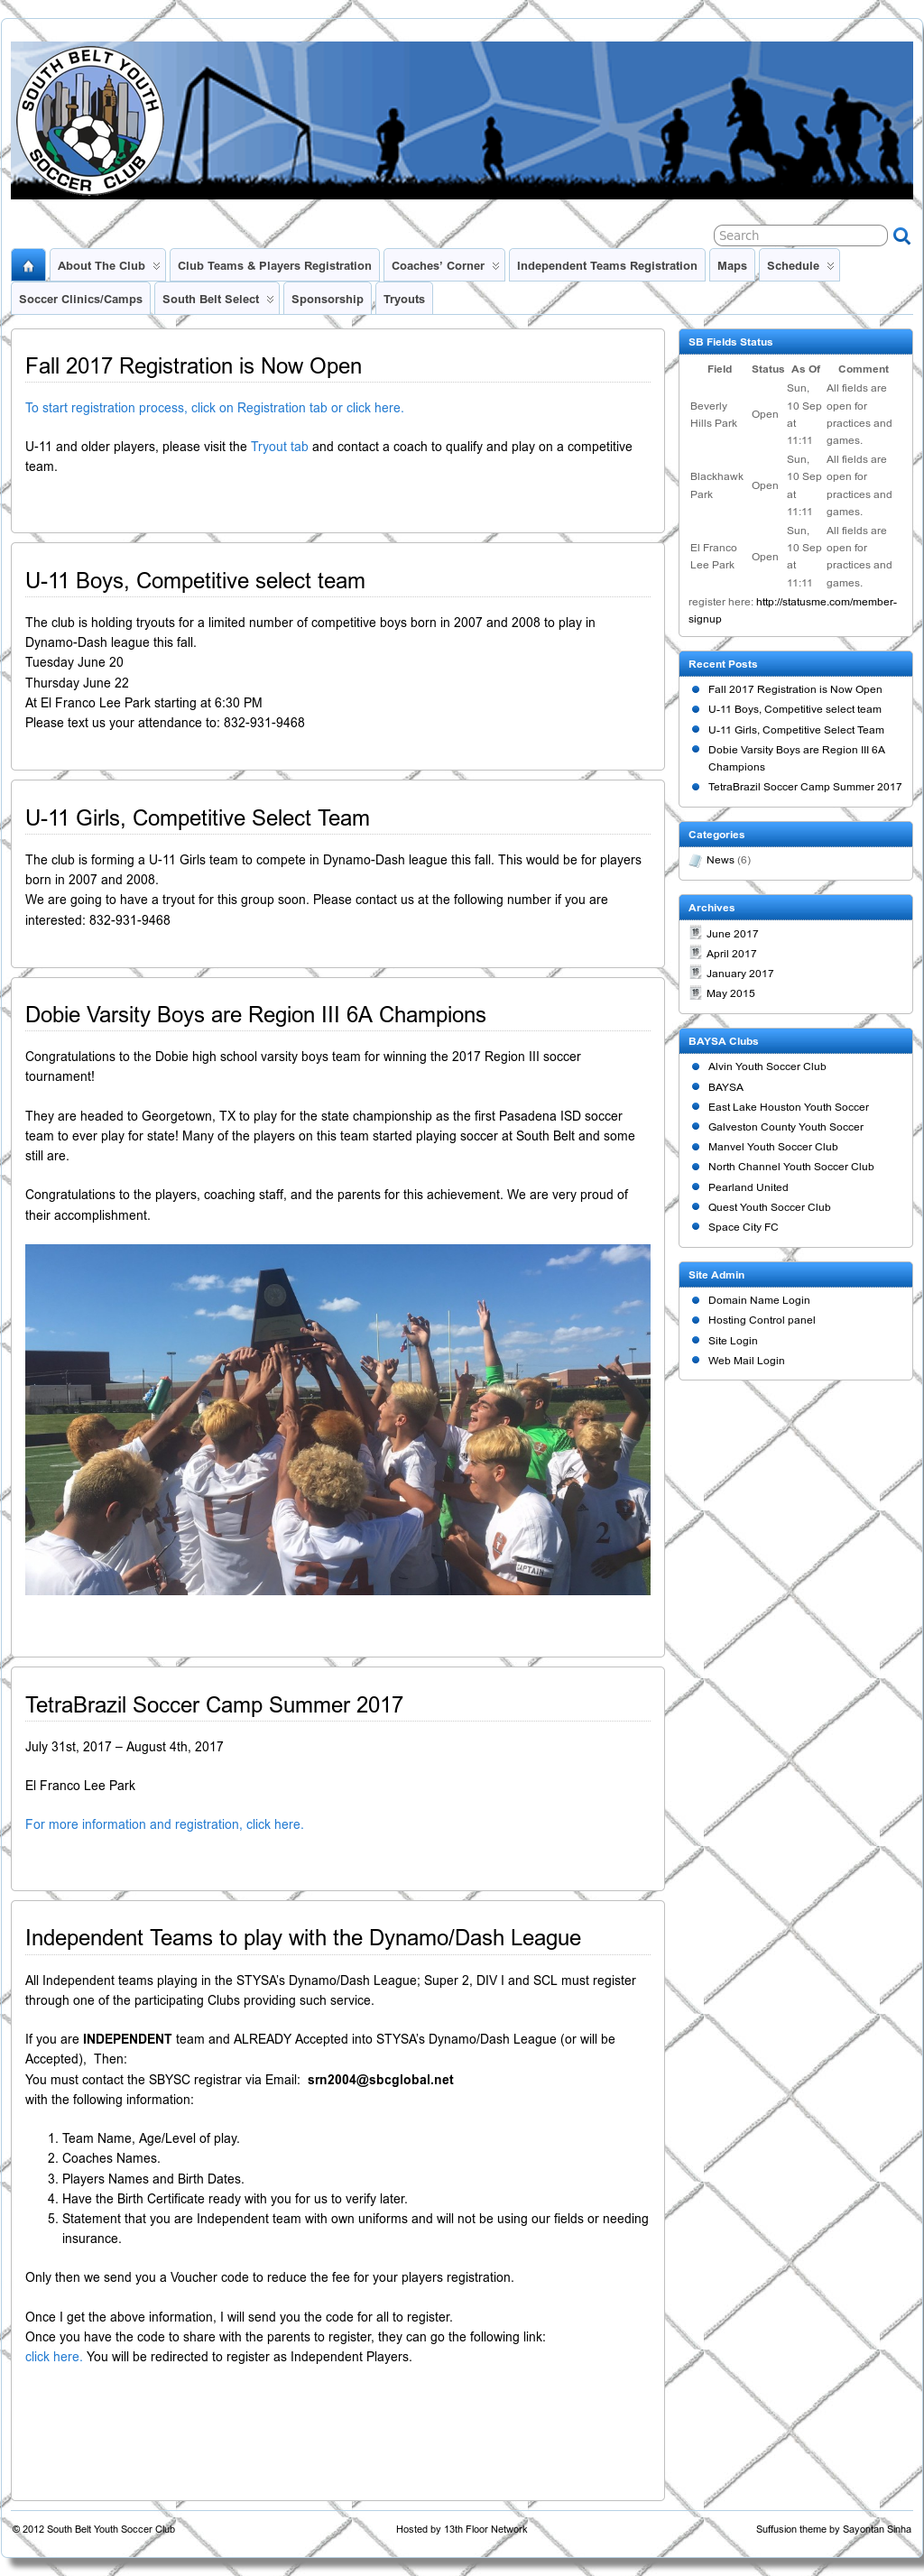 South Belt Youth Soccer Club Competitors, Revenue and